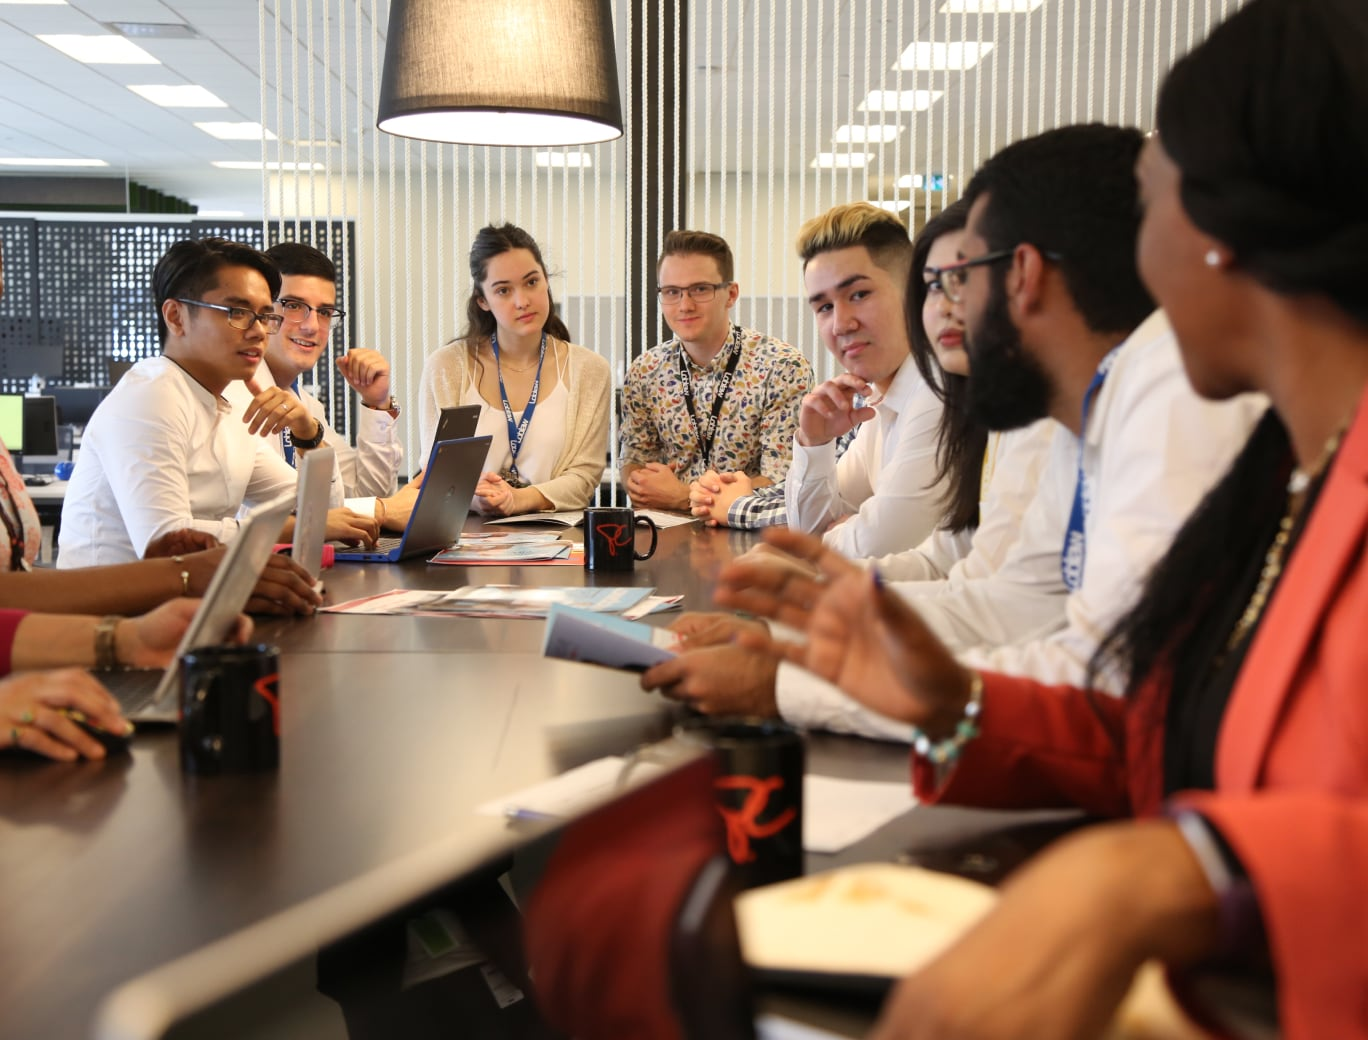 Group of interns sitting at a table with laptops listening to someone speak.